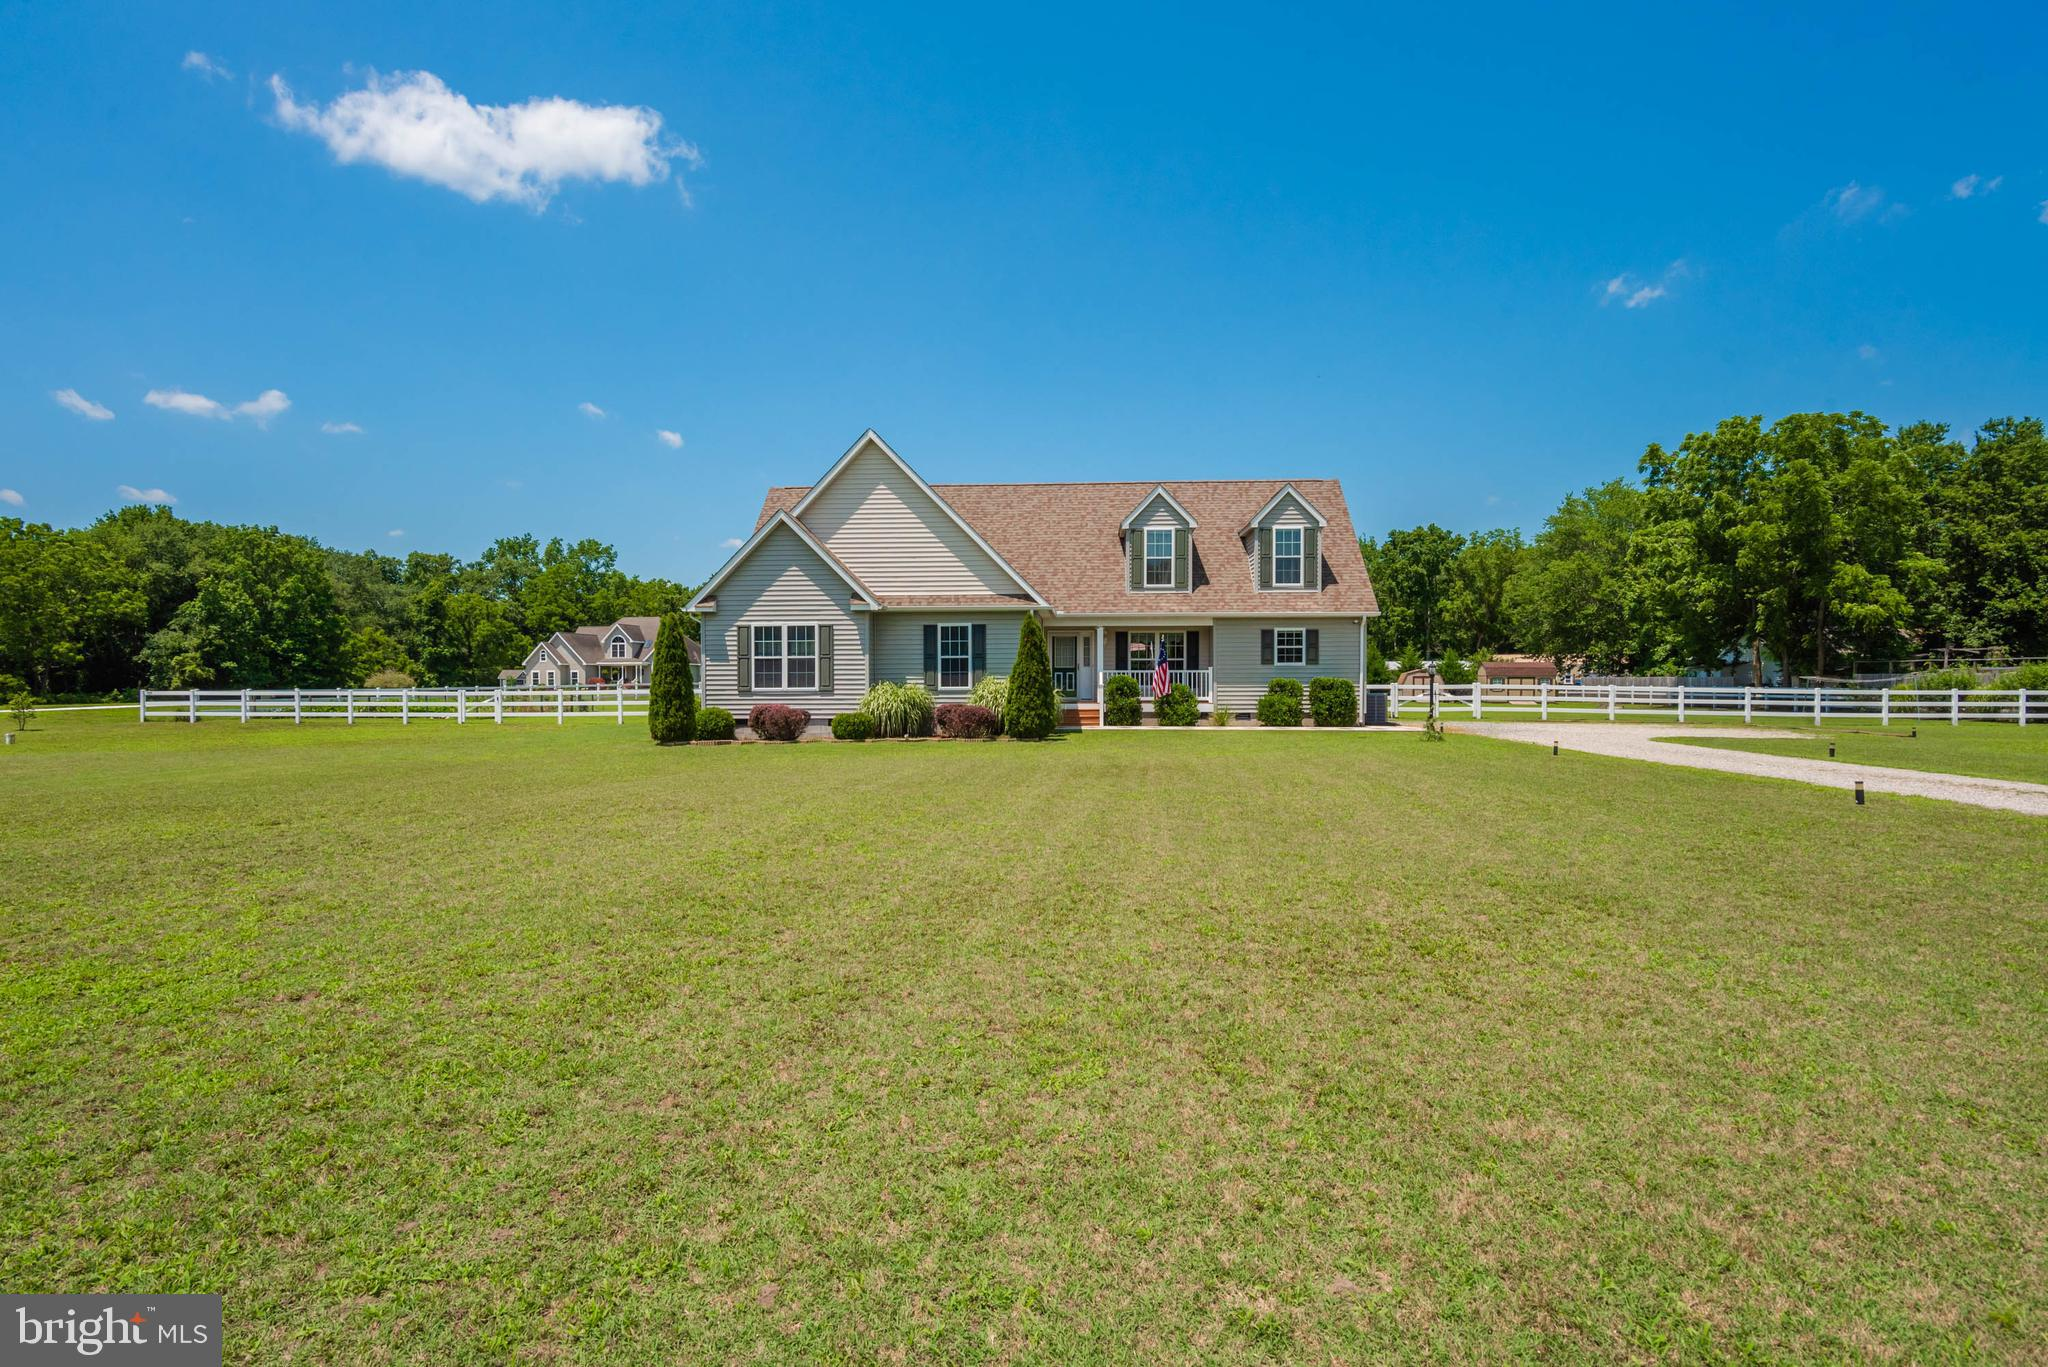 Rural Living at it's best in this 2012 built home on 2.35 acres with huge vinyl fenced yard for kids